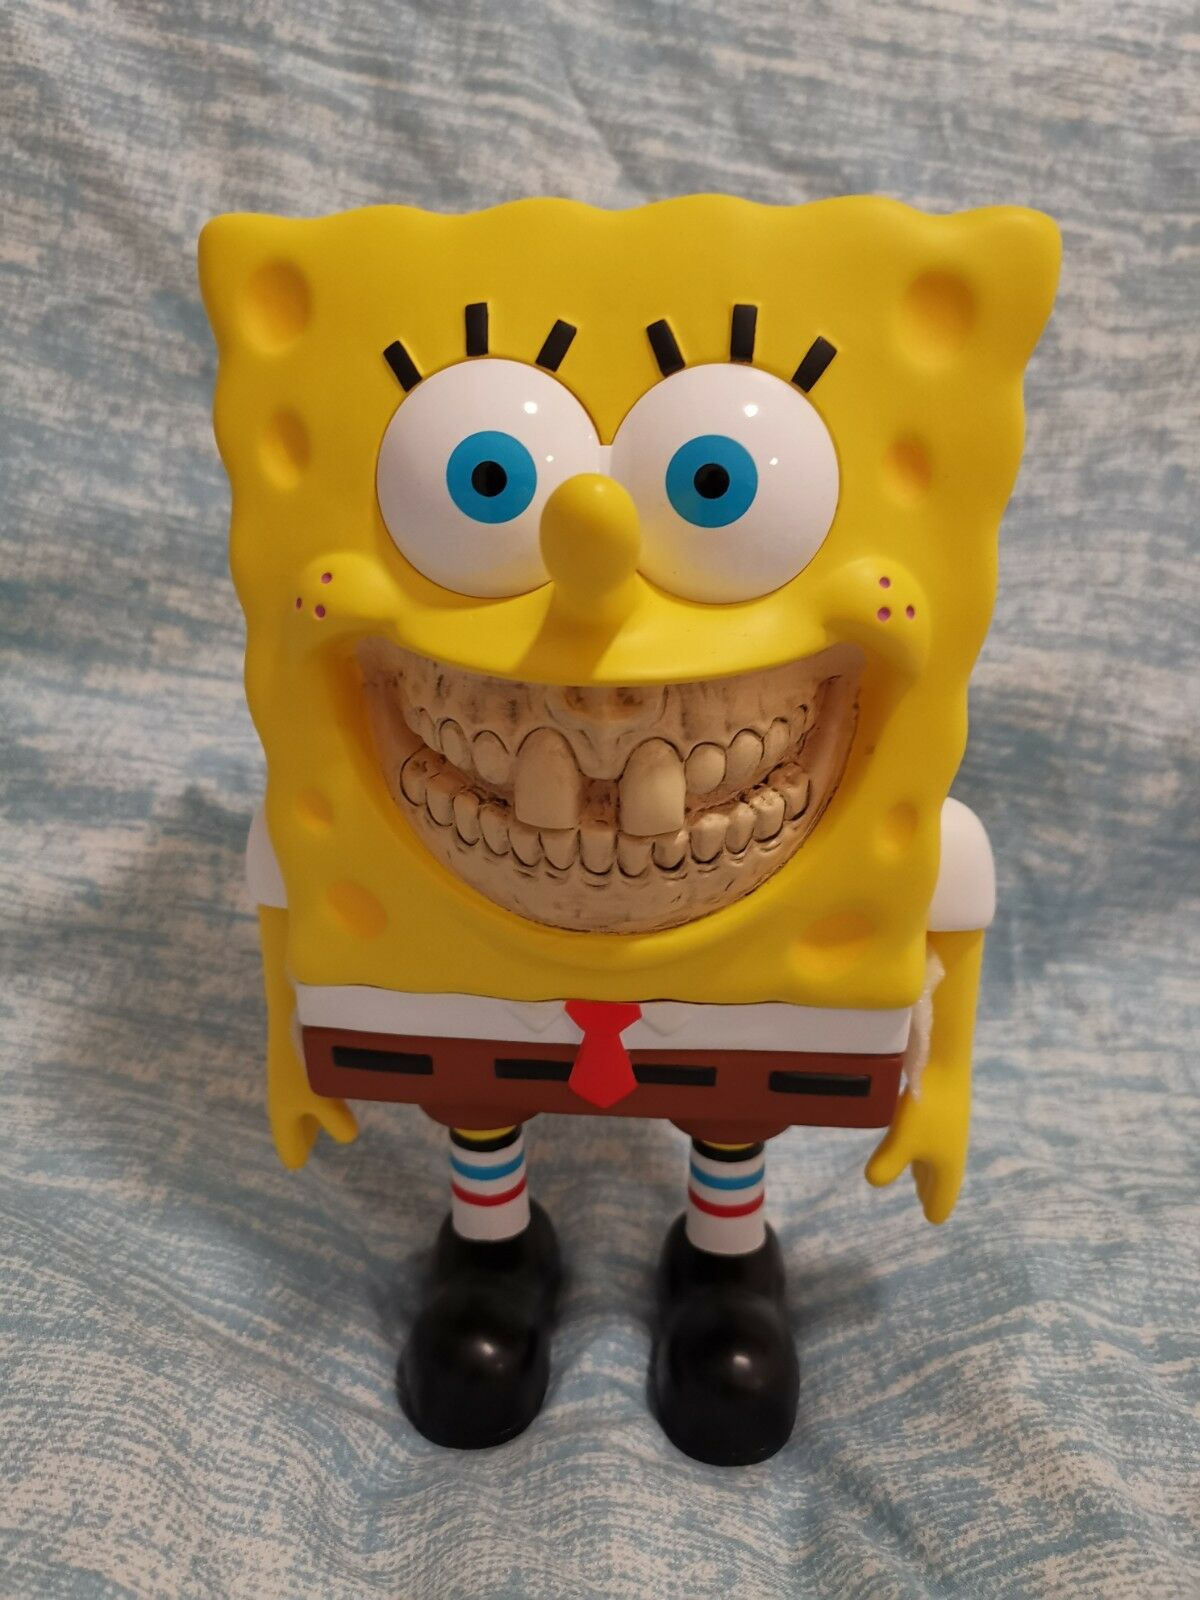 Ron English X Dopeness Art Lab Cheezy Grin, Limited Edition Spongebob